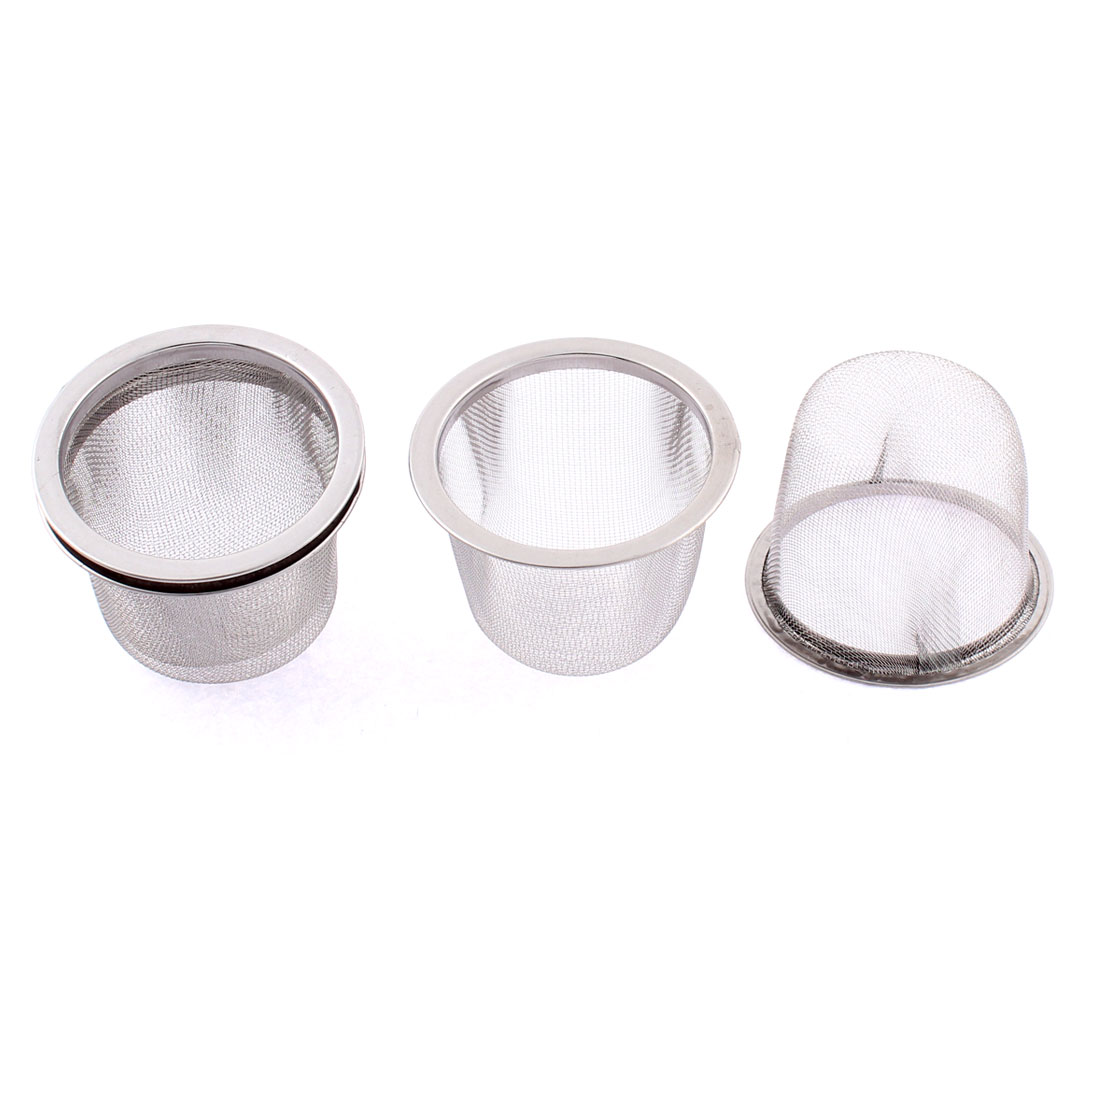 Stainless Steel Round Mesh Tea Infuser Strainer Filter 60mm Dia 4 Pcs